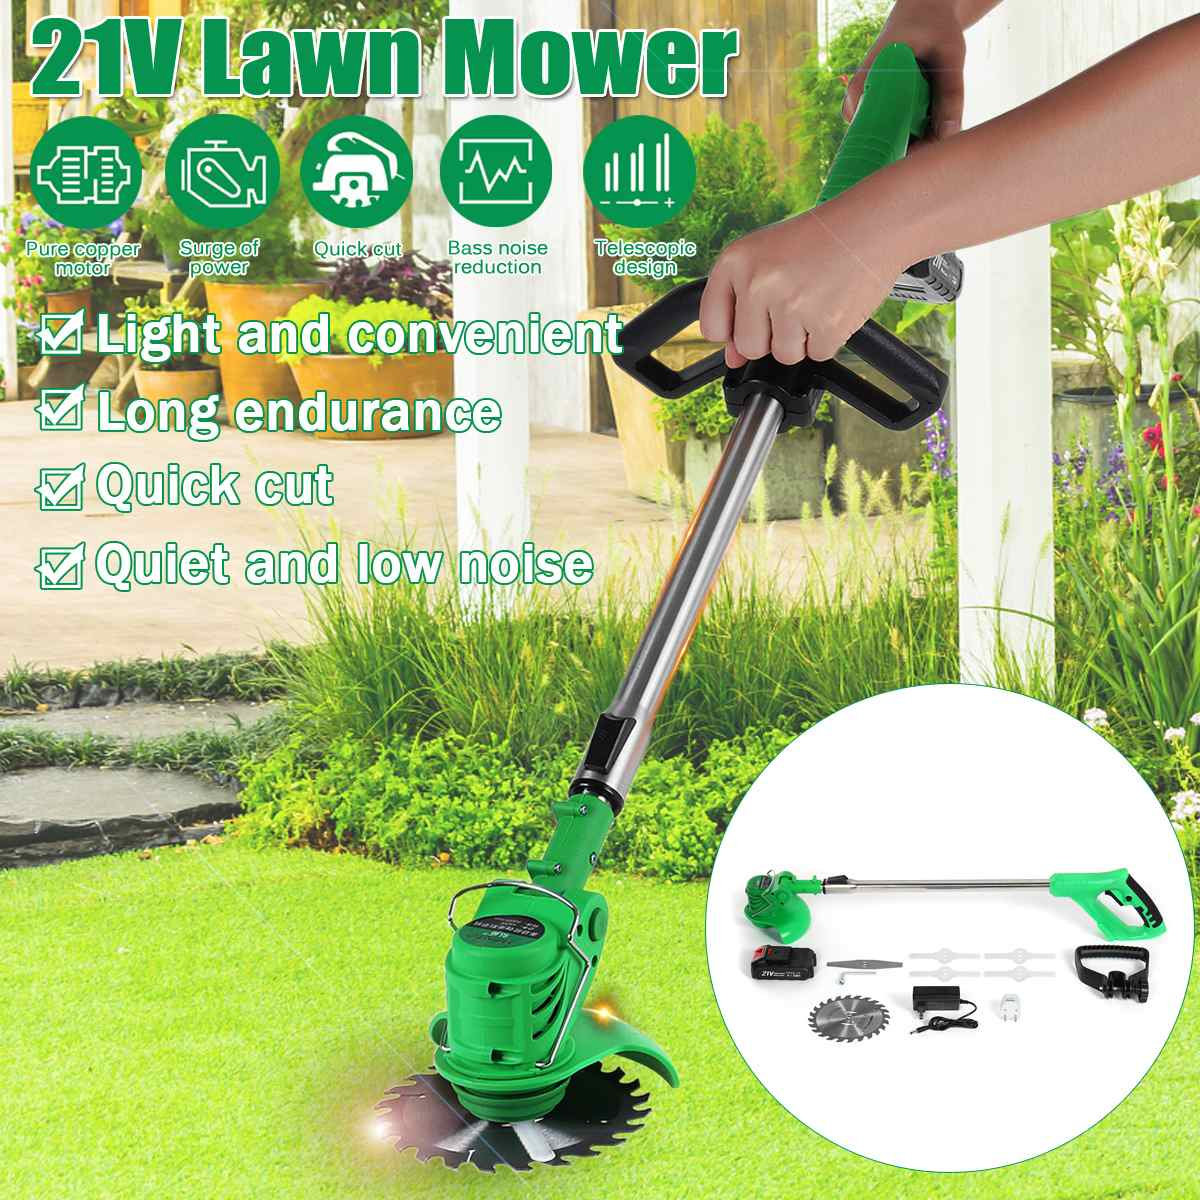 650W 2000mah Rechargeable Wireless Grass Trimmer 21V Adjustable Electric Garden Push Lawnmower 1Battery 1Charger Lawn Mower